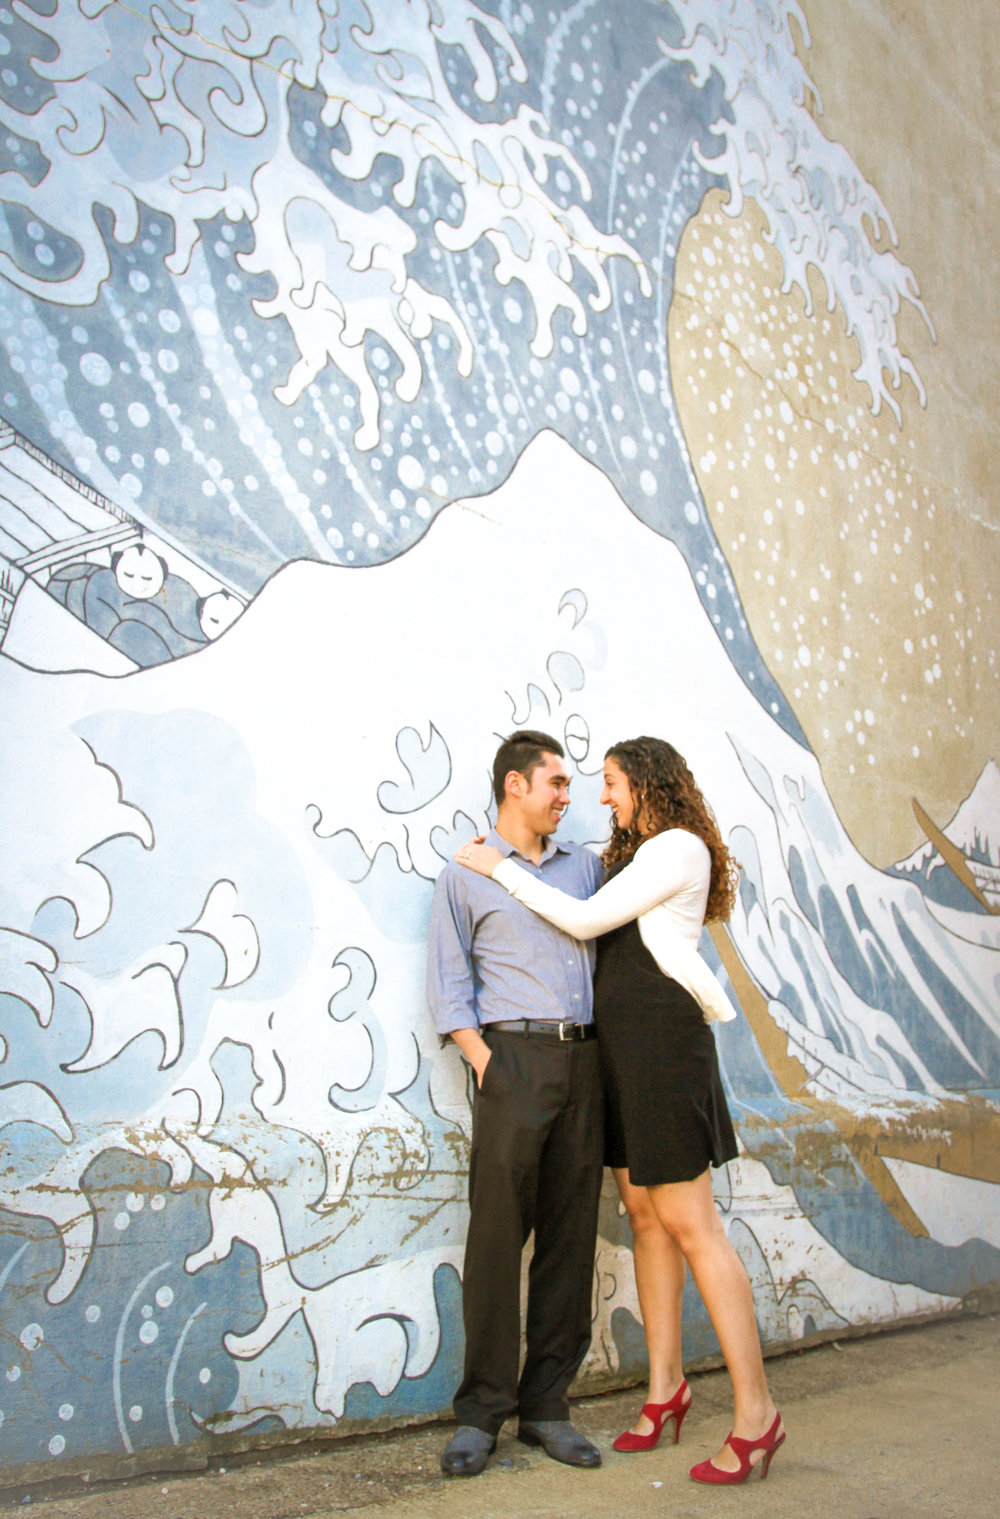 Lital & Garrett | Maral Noori Photography | Washington, DC Engagement Photographer